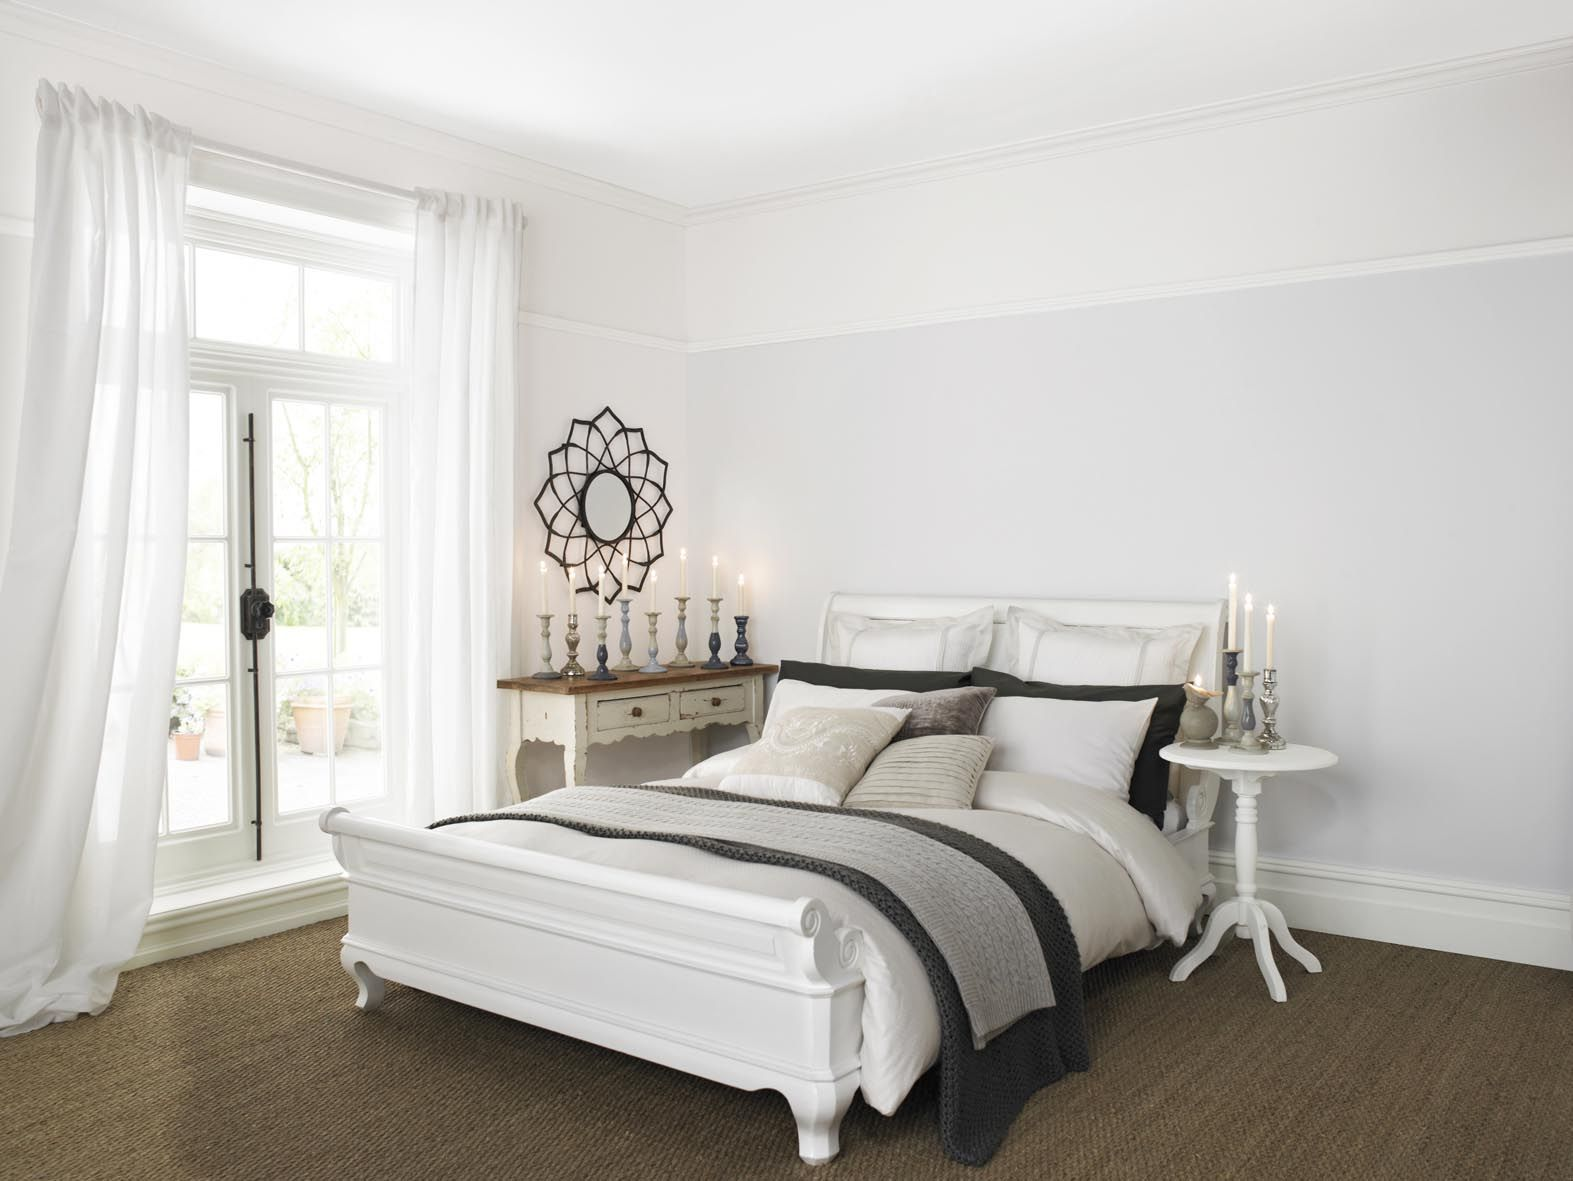 cream coloured bedroom interiors sleep tight pinterest sophisticated pale grey bedroom painted with crown matt emulsion in seldom seen